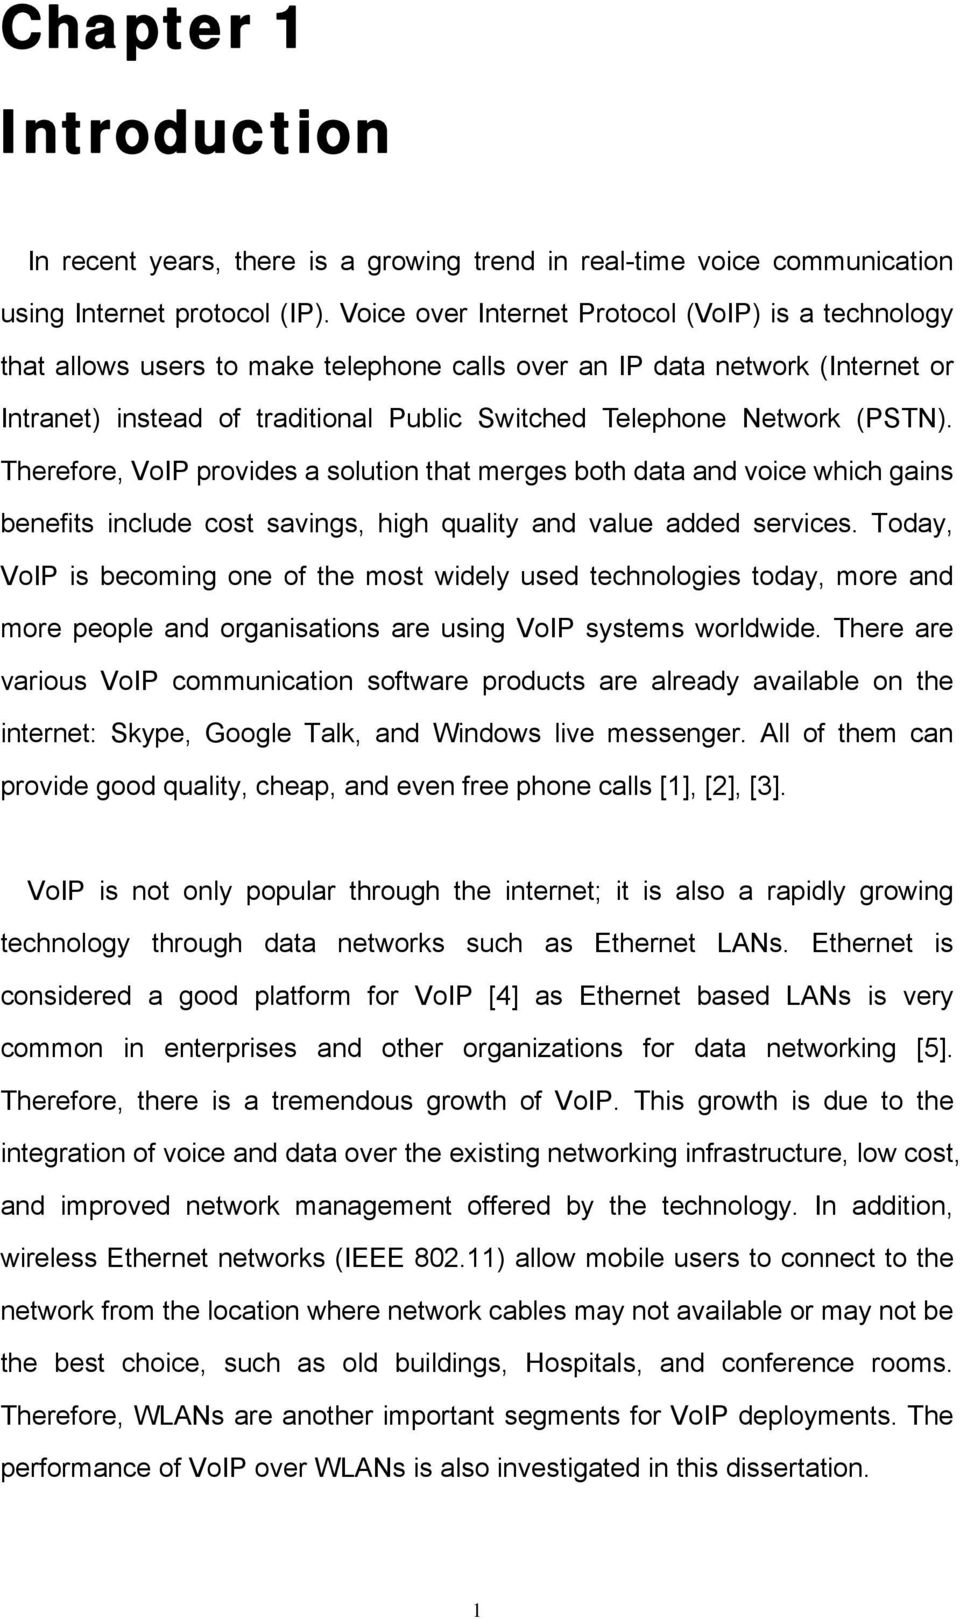 (PSTN). Therefore, VoIP provides a solution that merges both data and voice which gains benefits include cost savings, high quality and value added services.